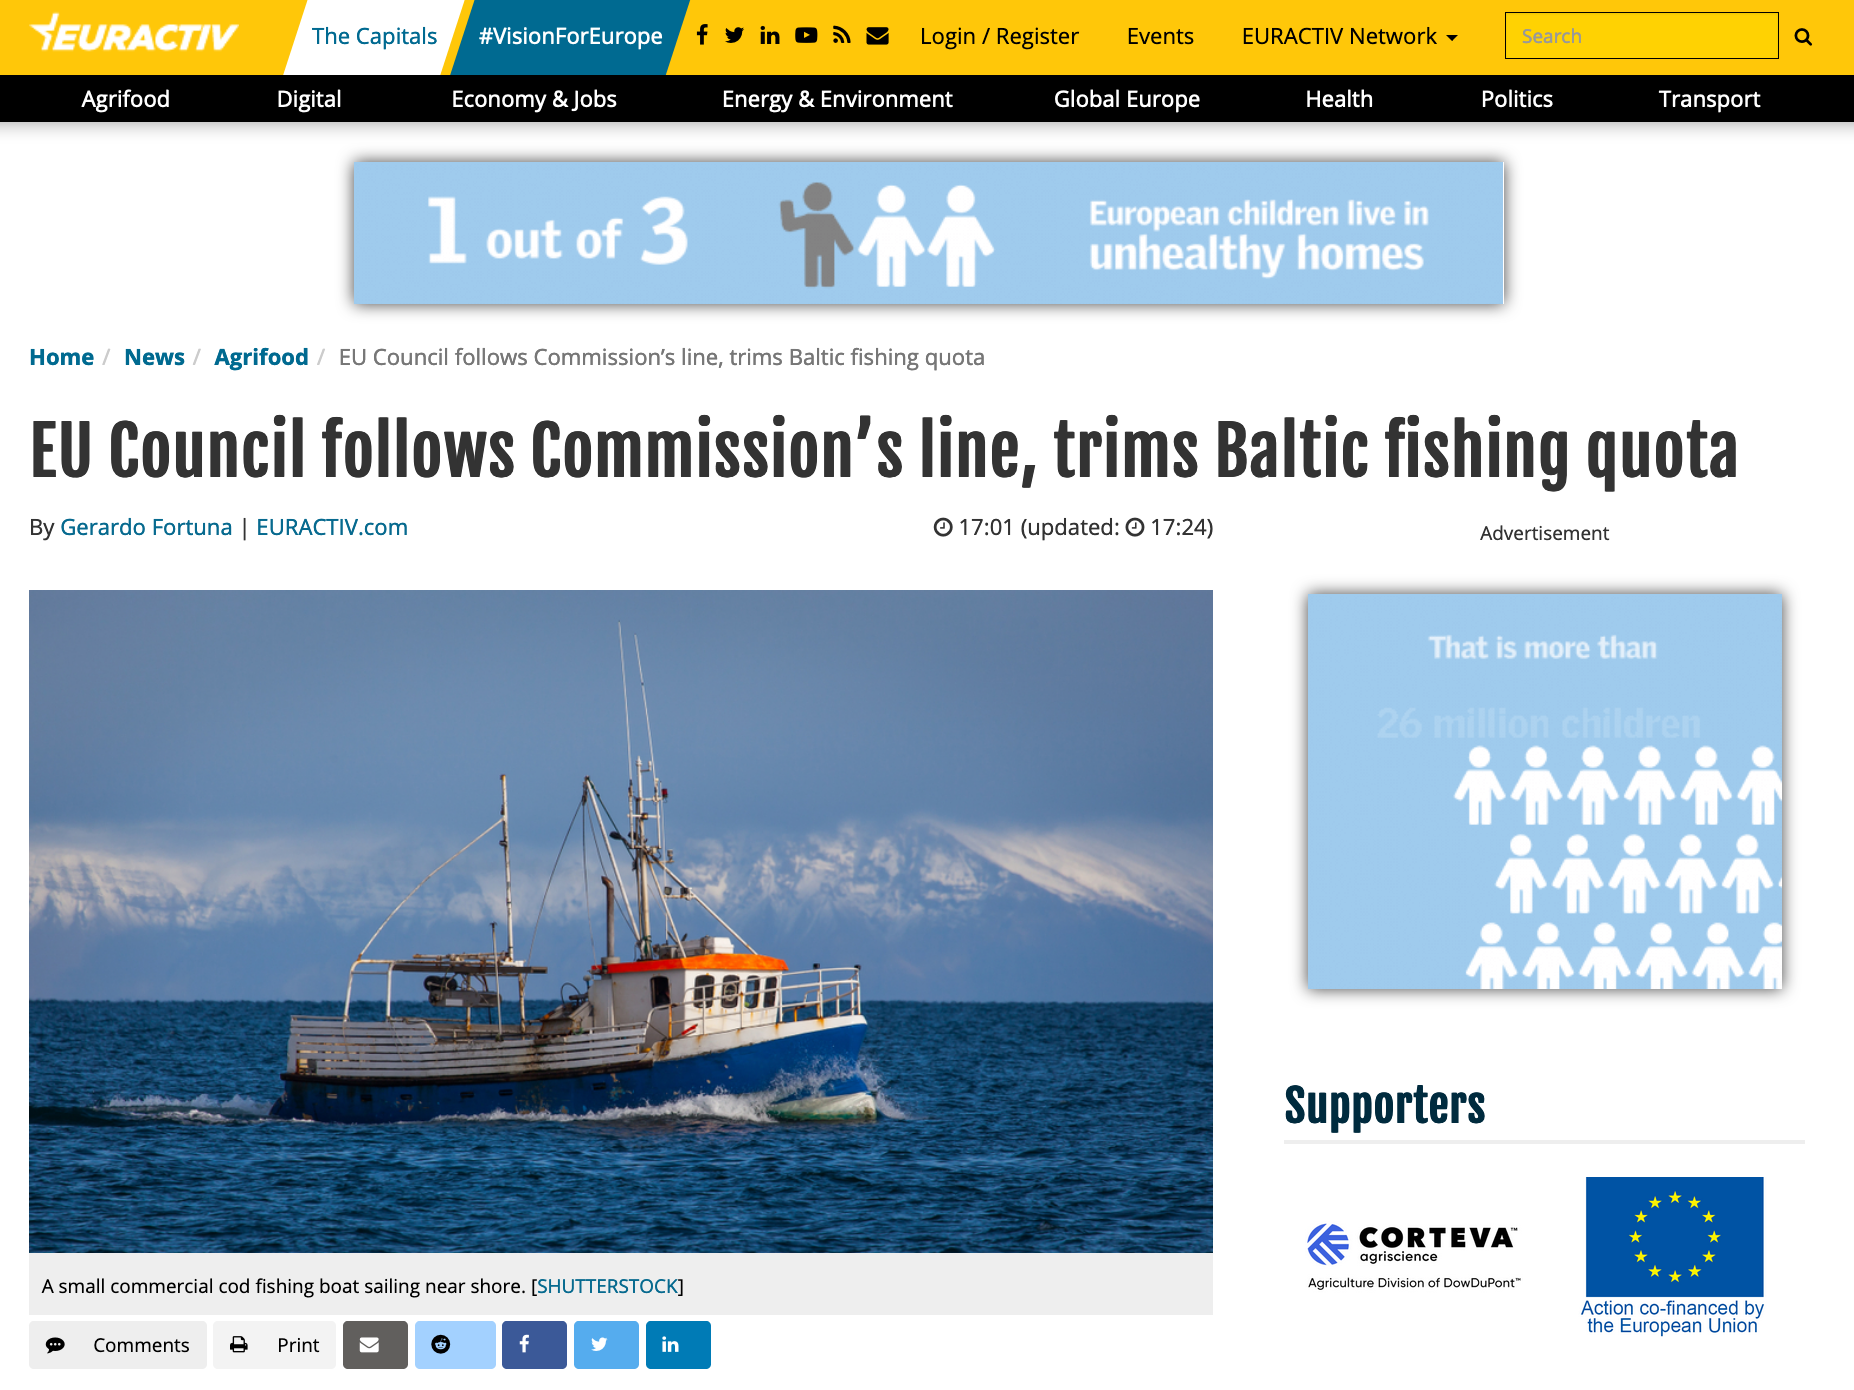 EU Council follows Commission's line, trims Baltic fishing quota